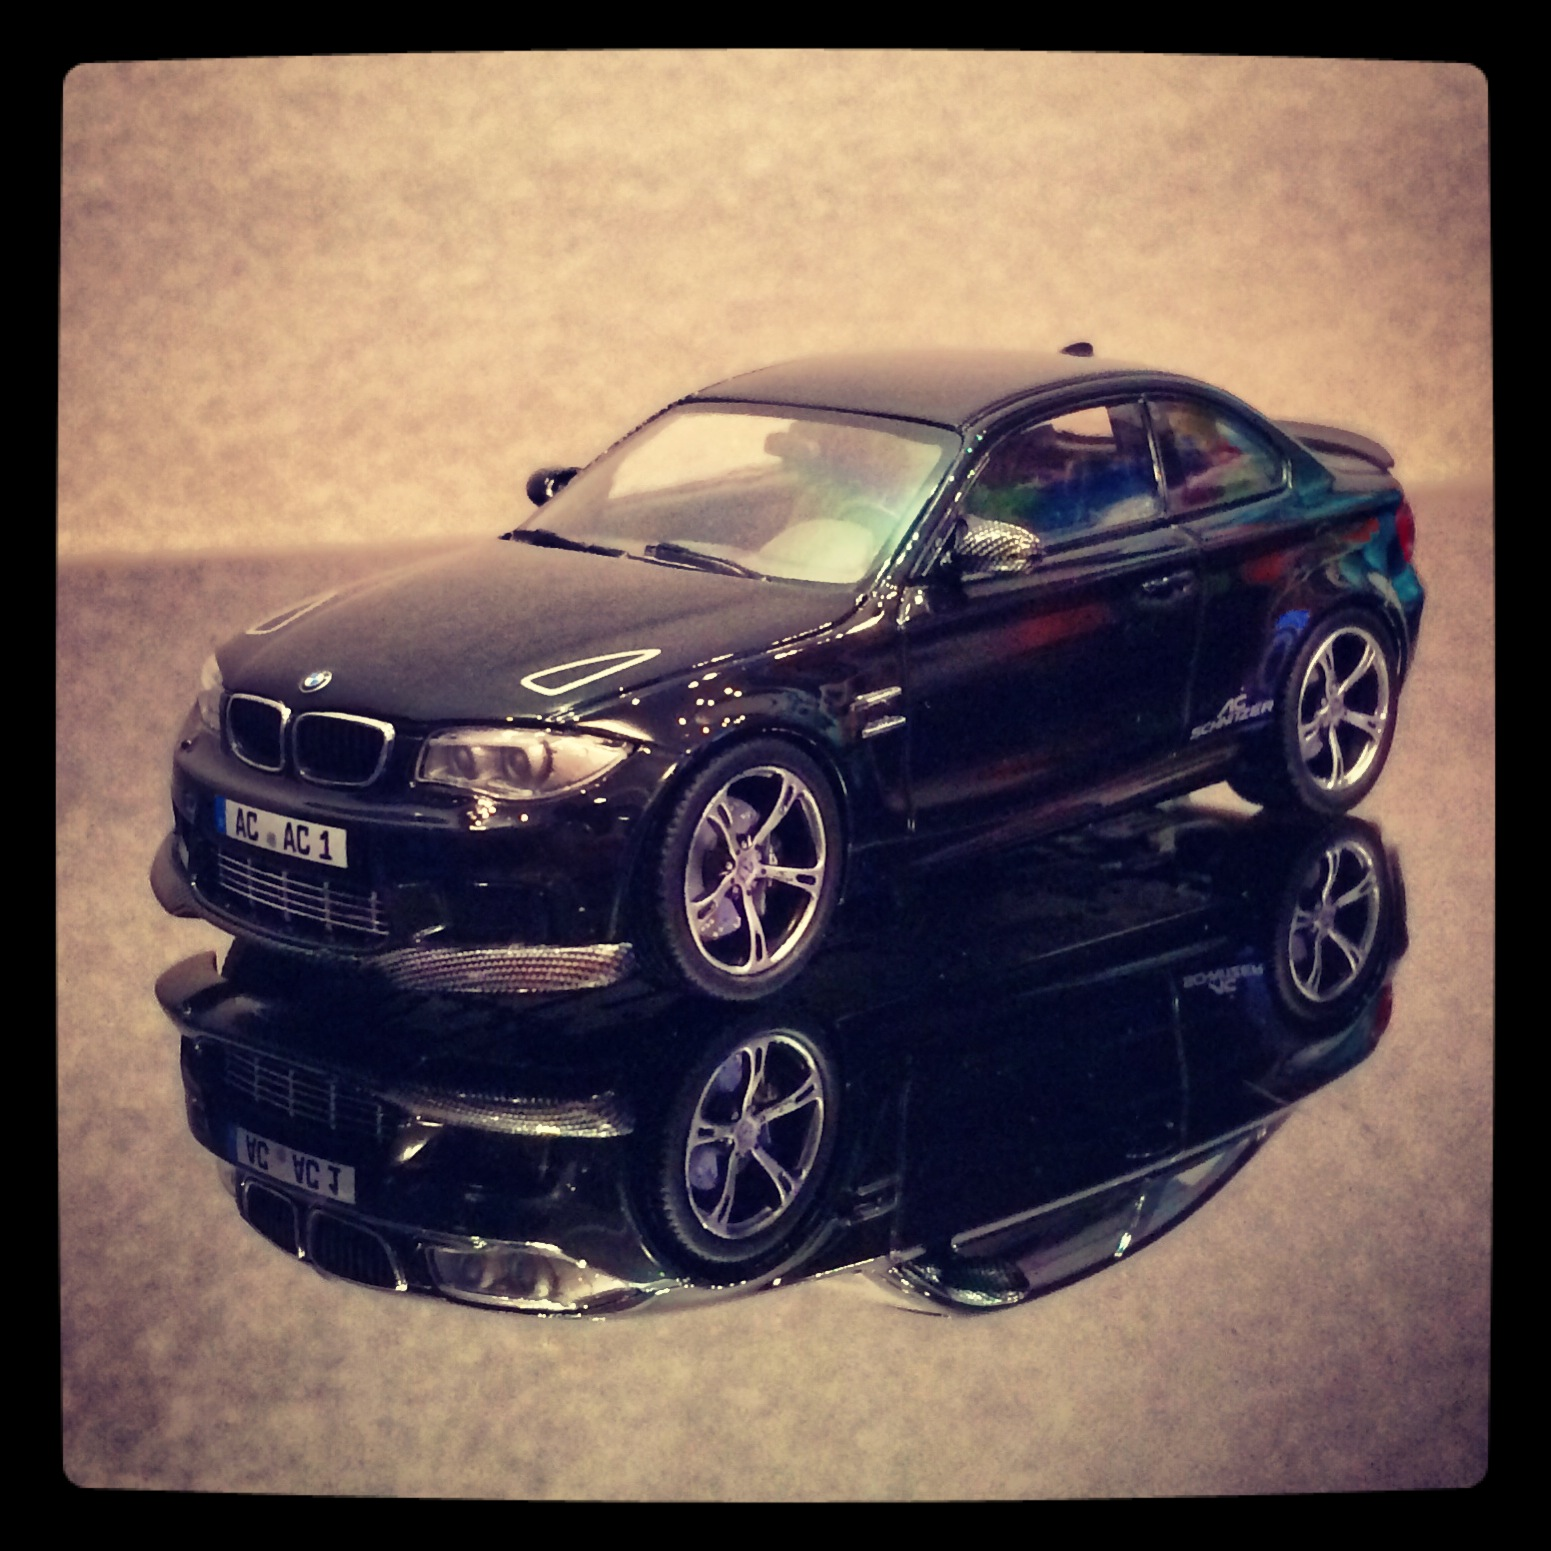 W 1M coupe (E82) ACS 1 Sport, saphir black, le 1 of 1,008pcs. (minichamps)